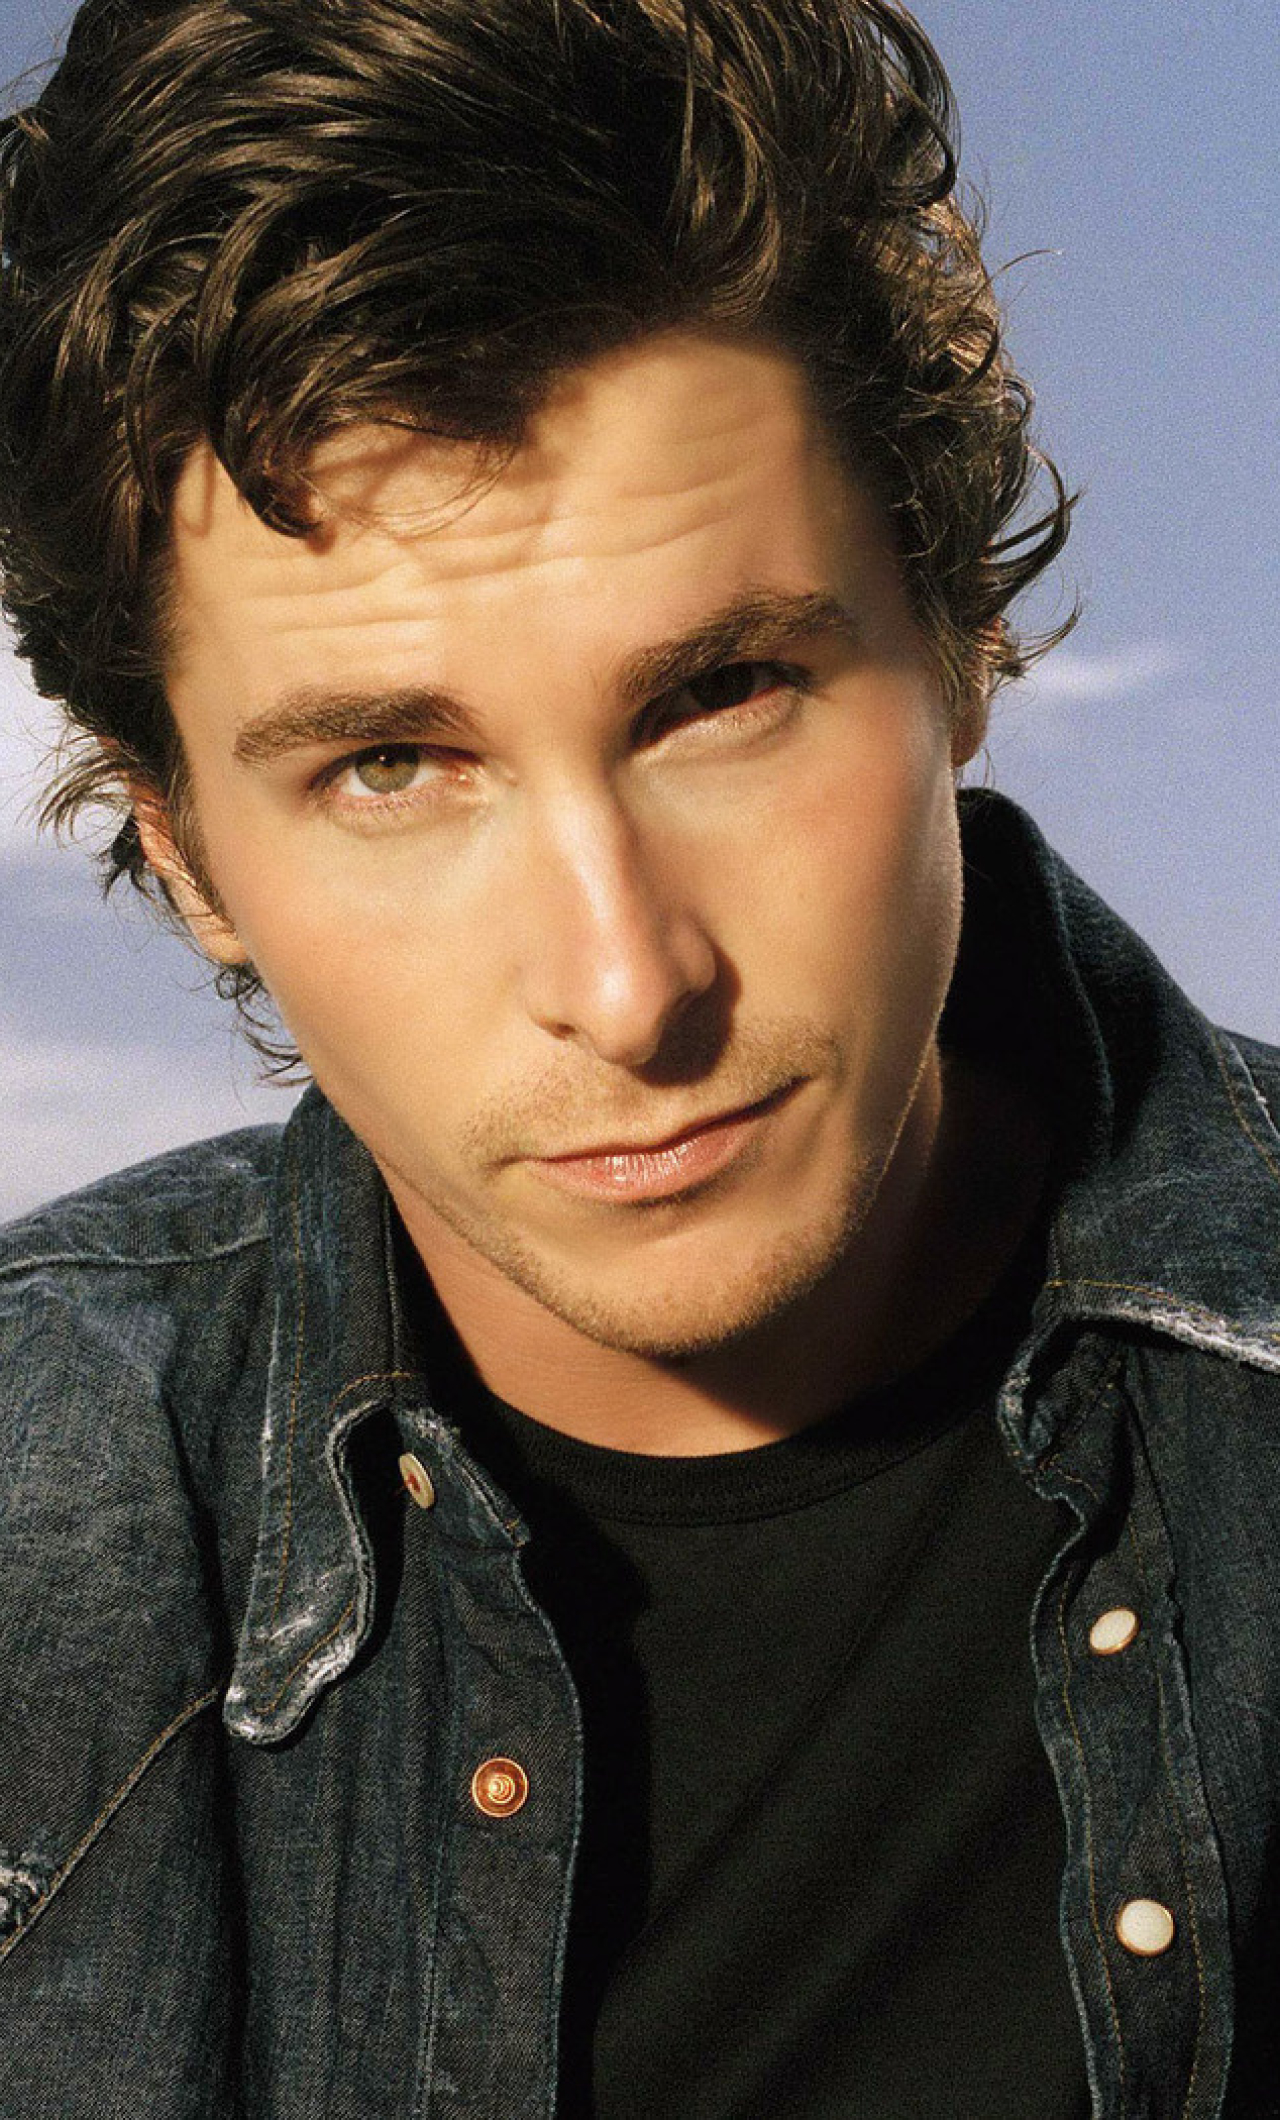 Download Christian Bale Photoshoot 3840x2160 Resolution Full Hd